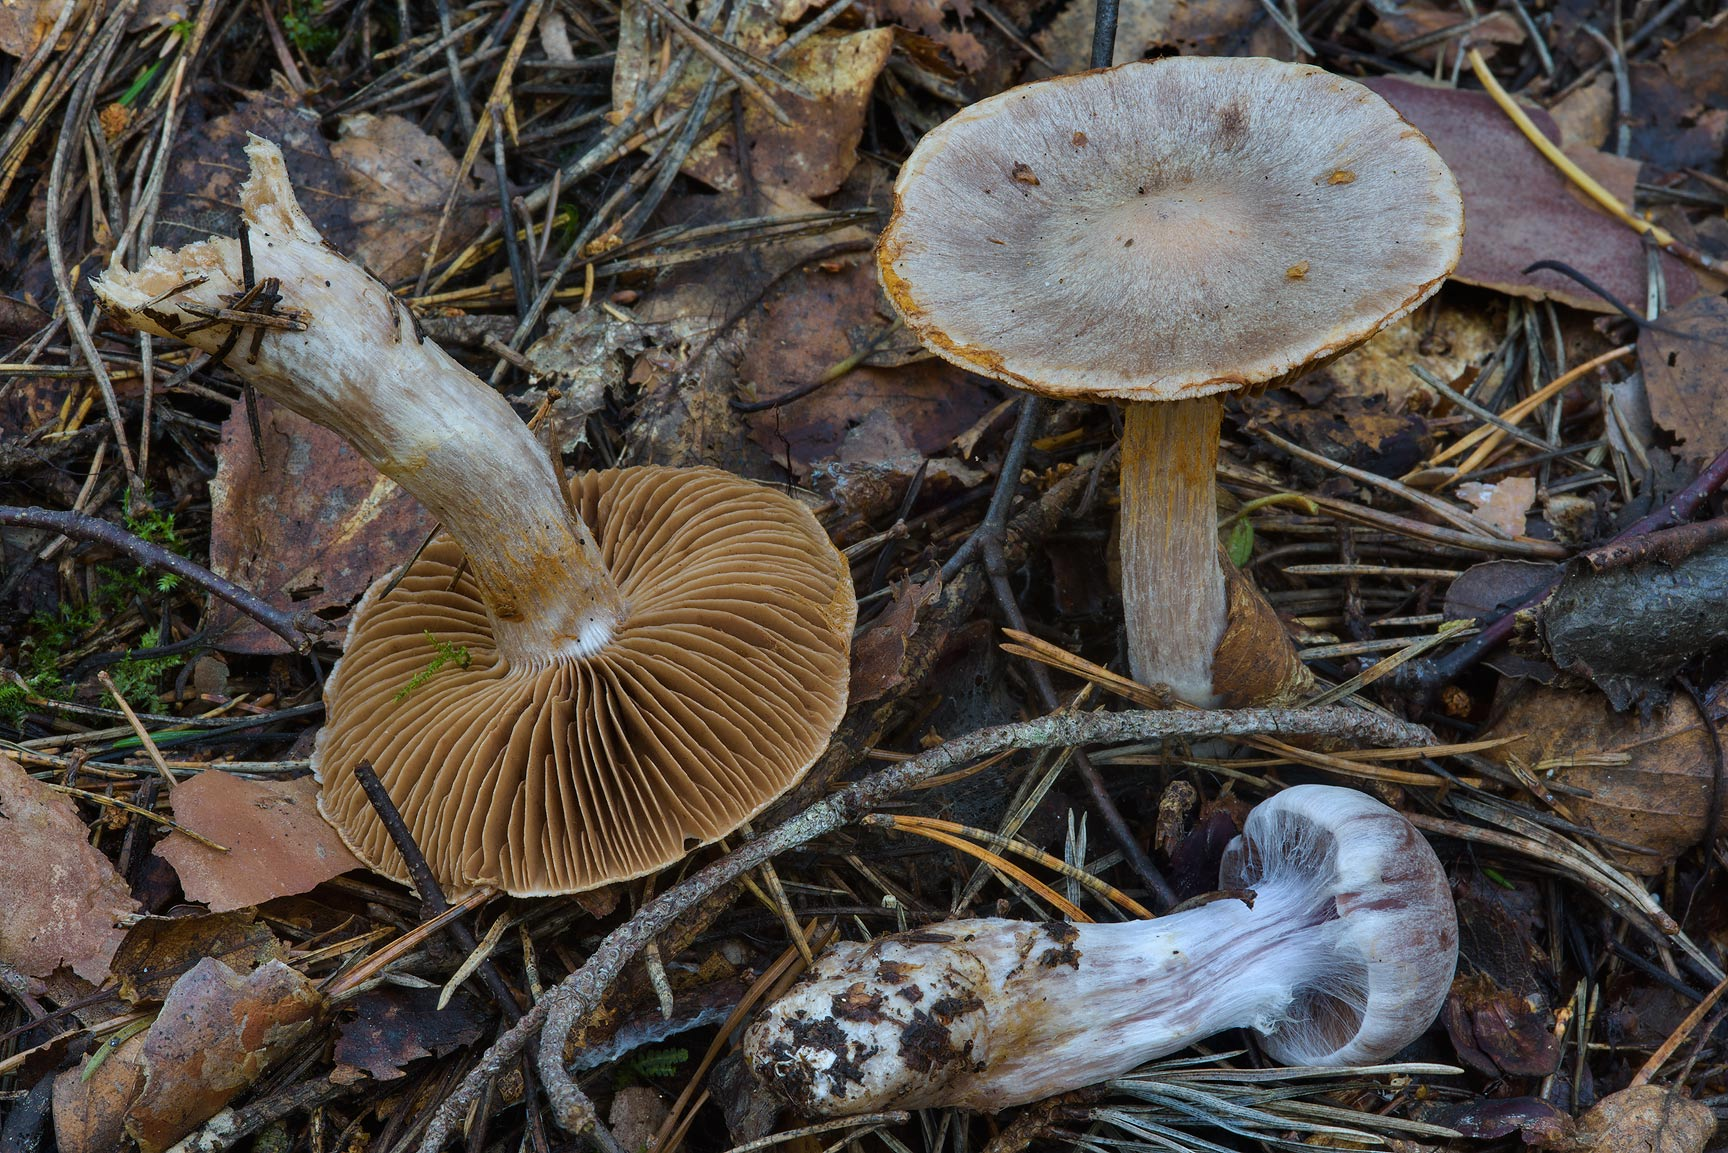 Some webcap mushrooms (Cortinarius sp.) in Dibuny, north-west from St.Petersburg, Russia